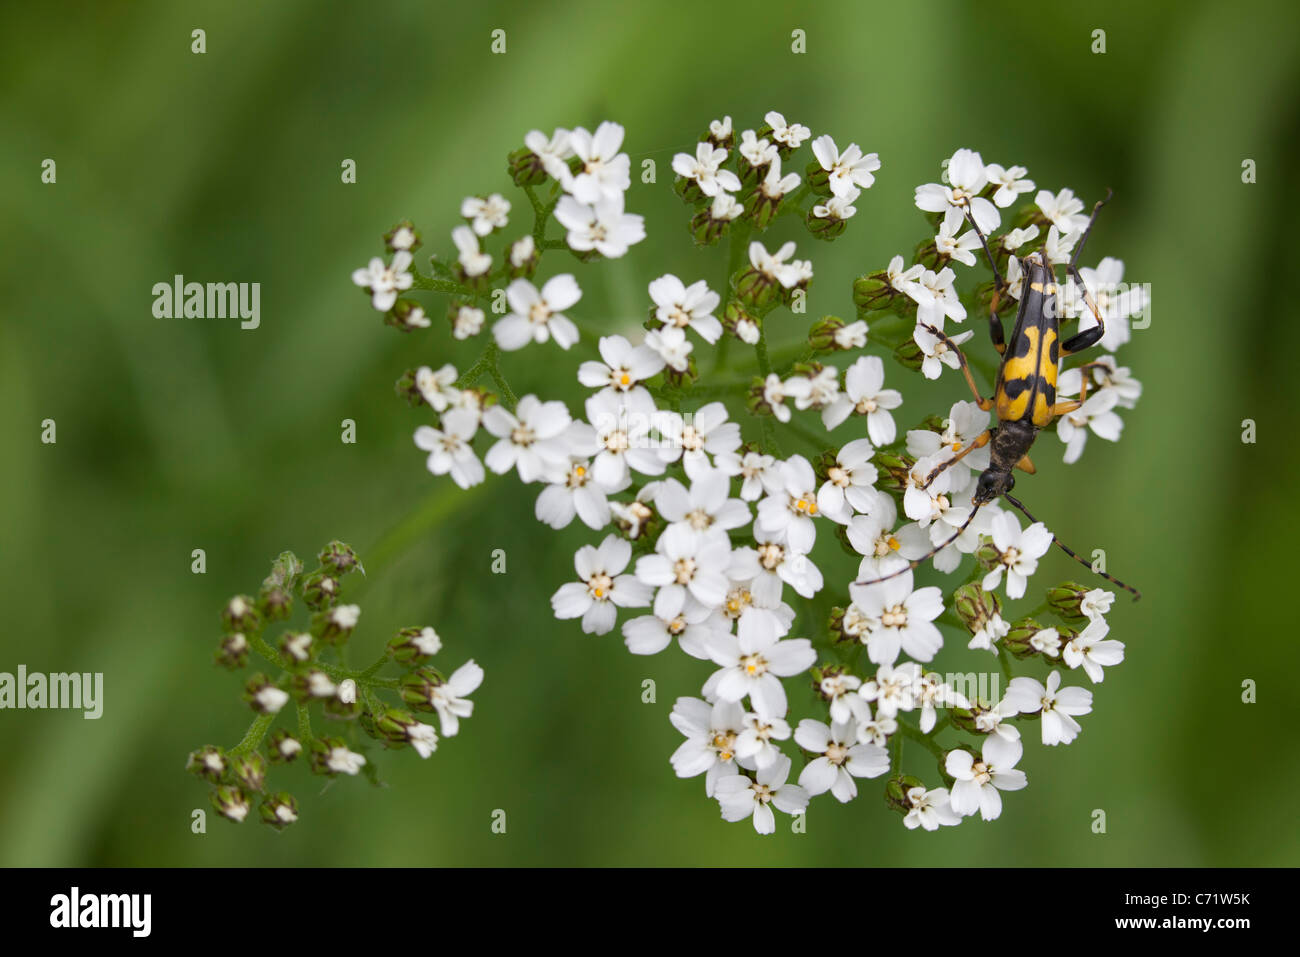 Longhorn beetle on white blossom - Stock Image